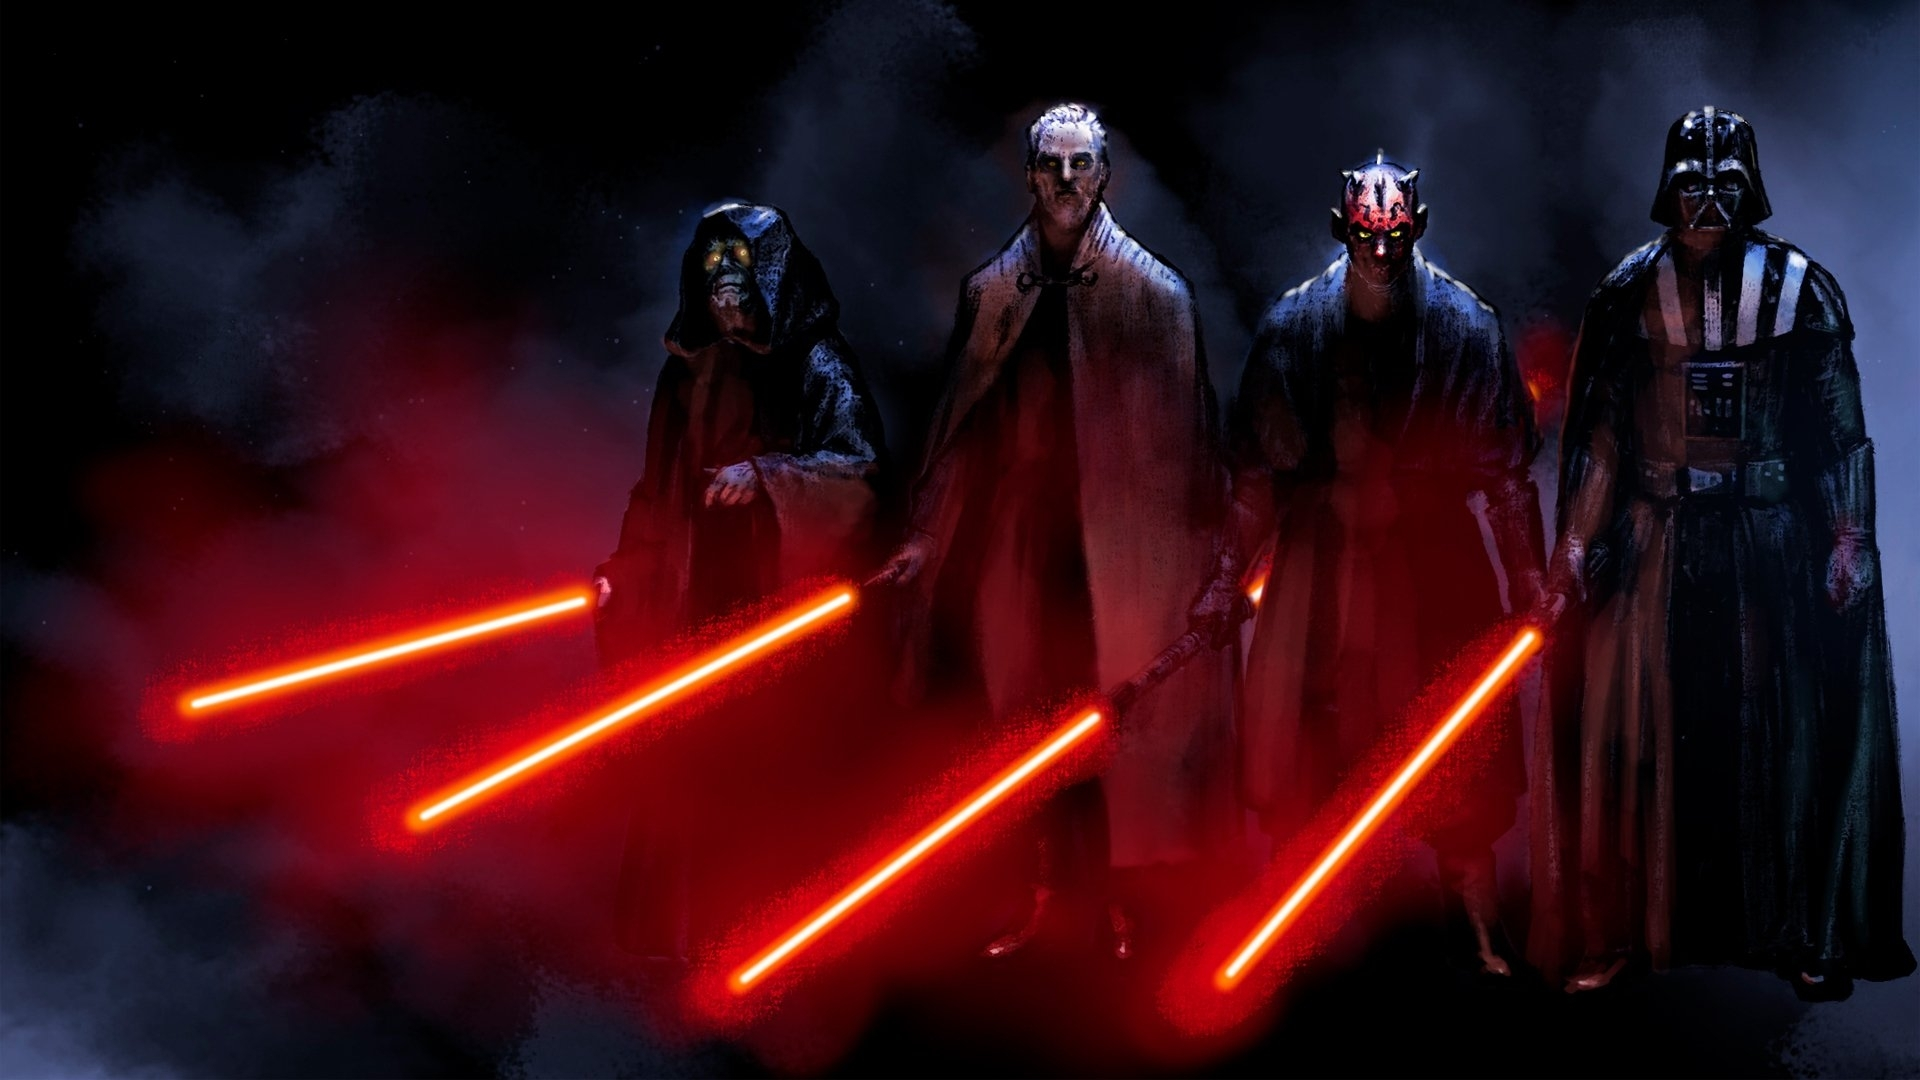 10 Best Star Wars Sith Wallpaper FULL HD 1920×1080 For PC Background